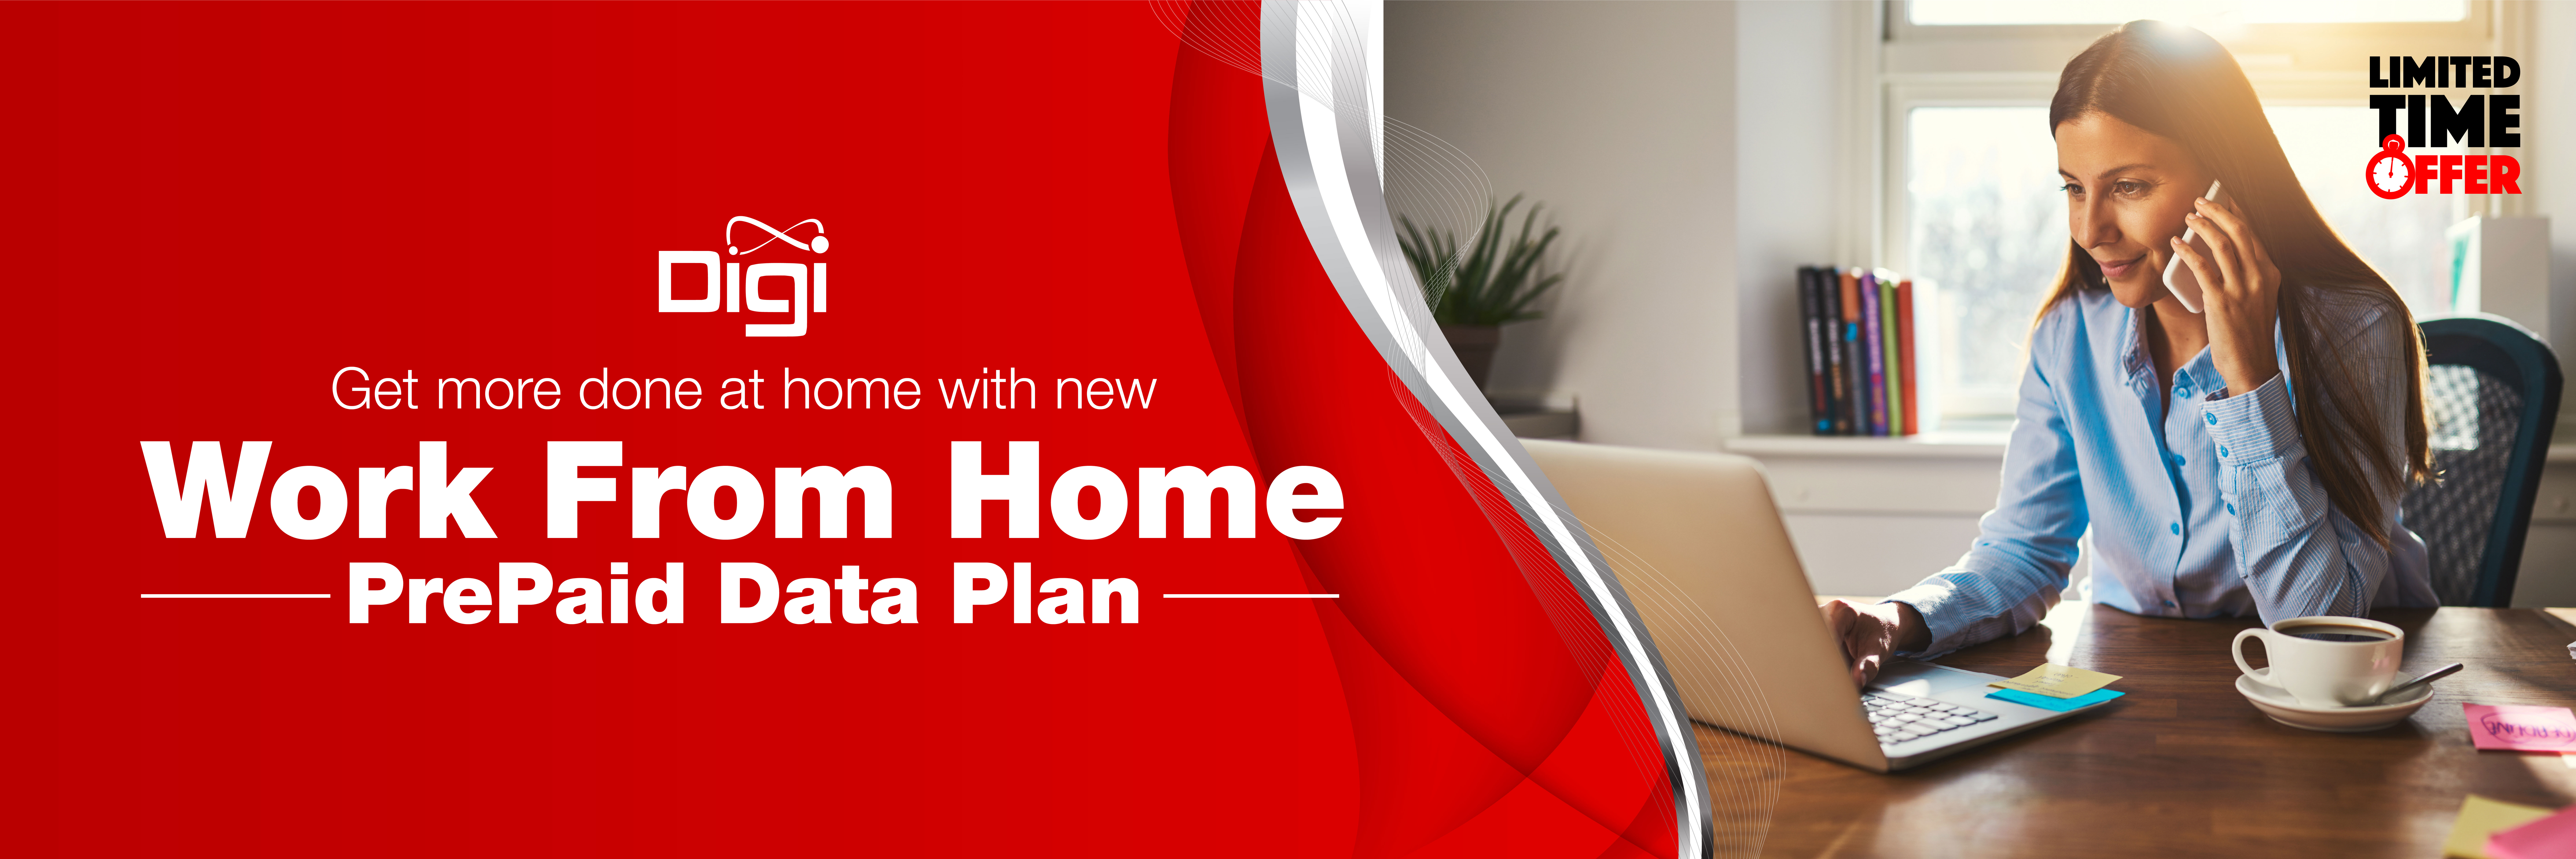 Work From Home Plan